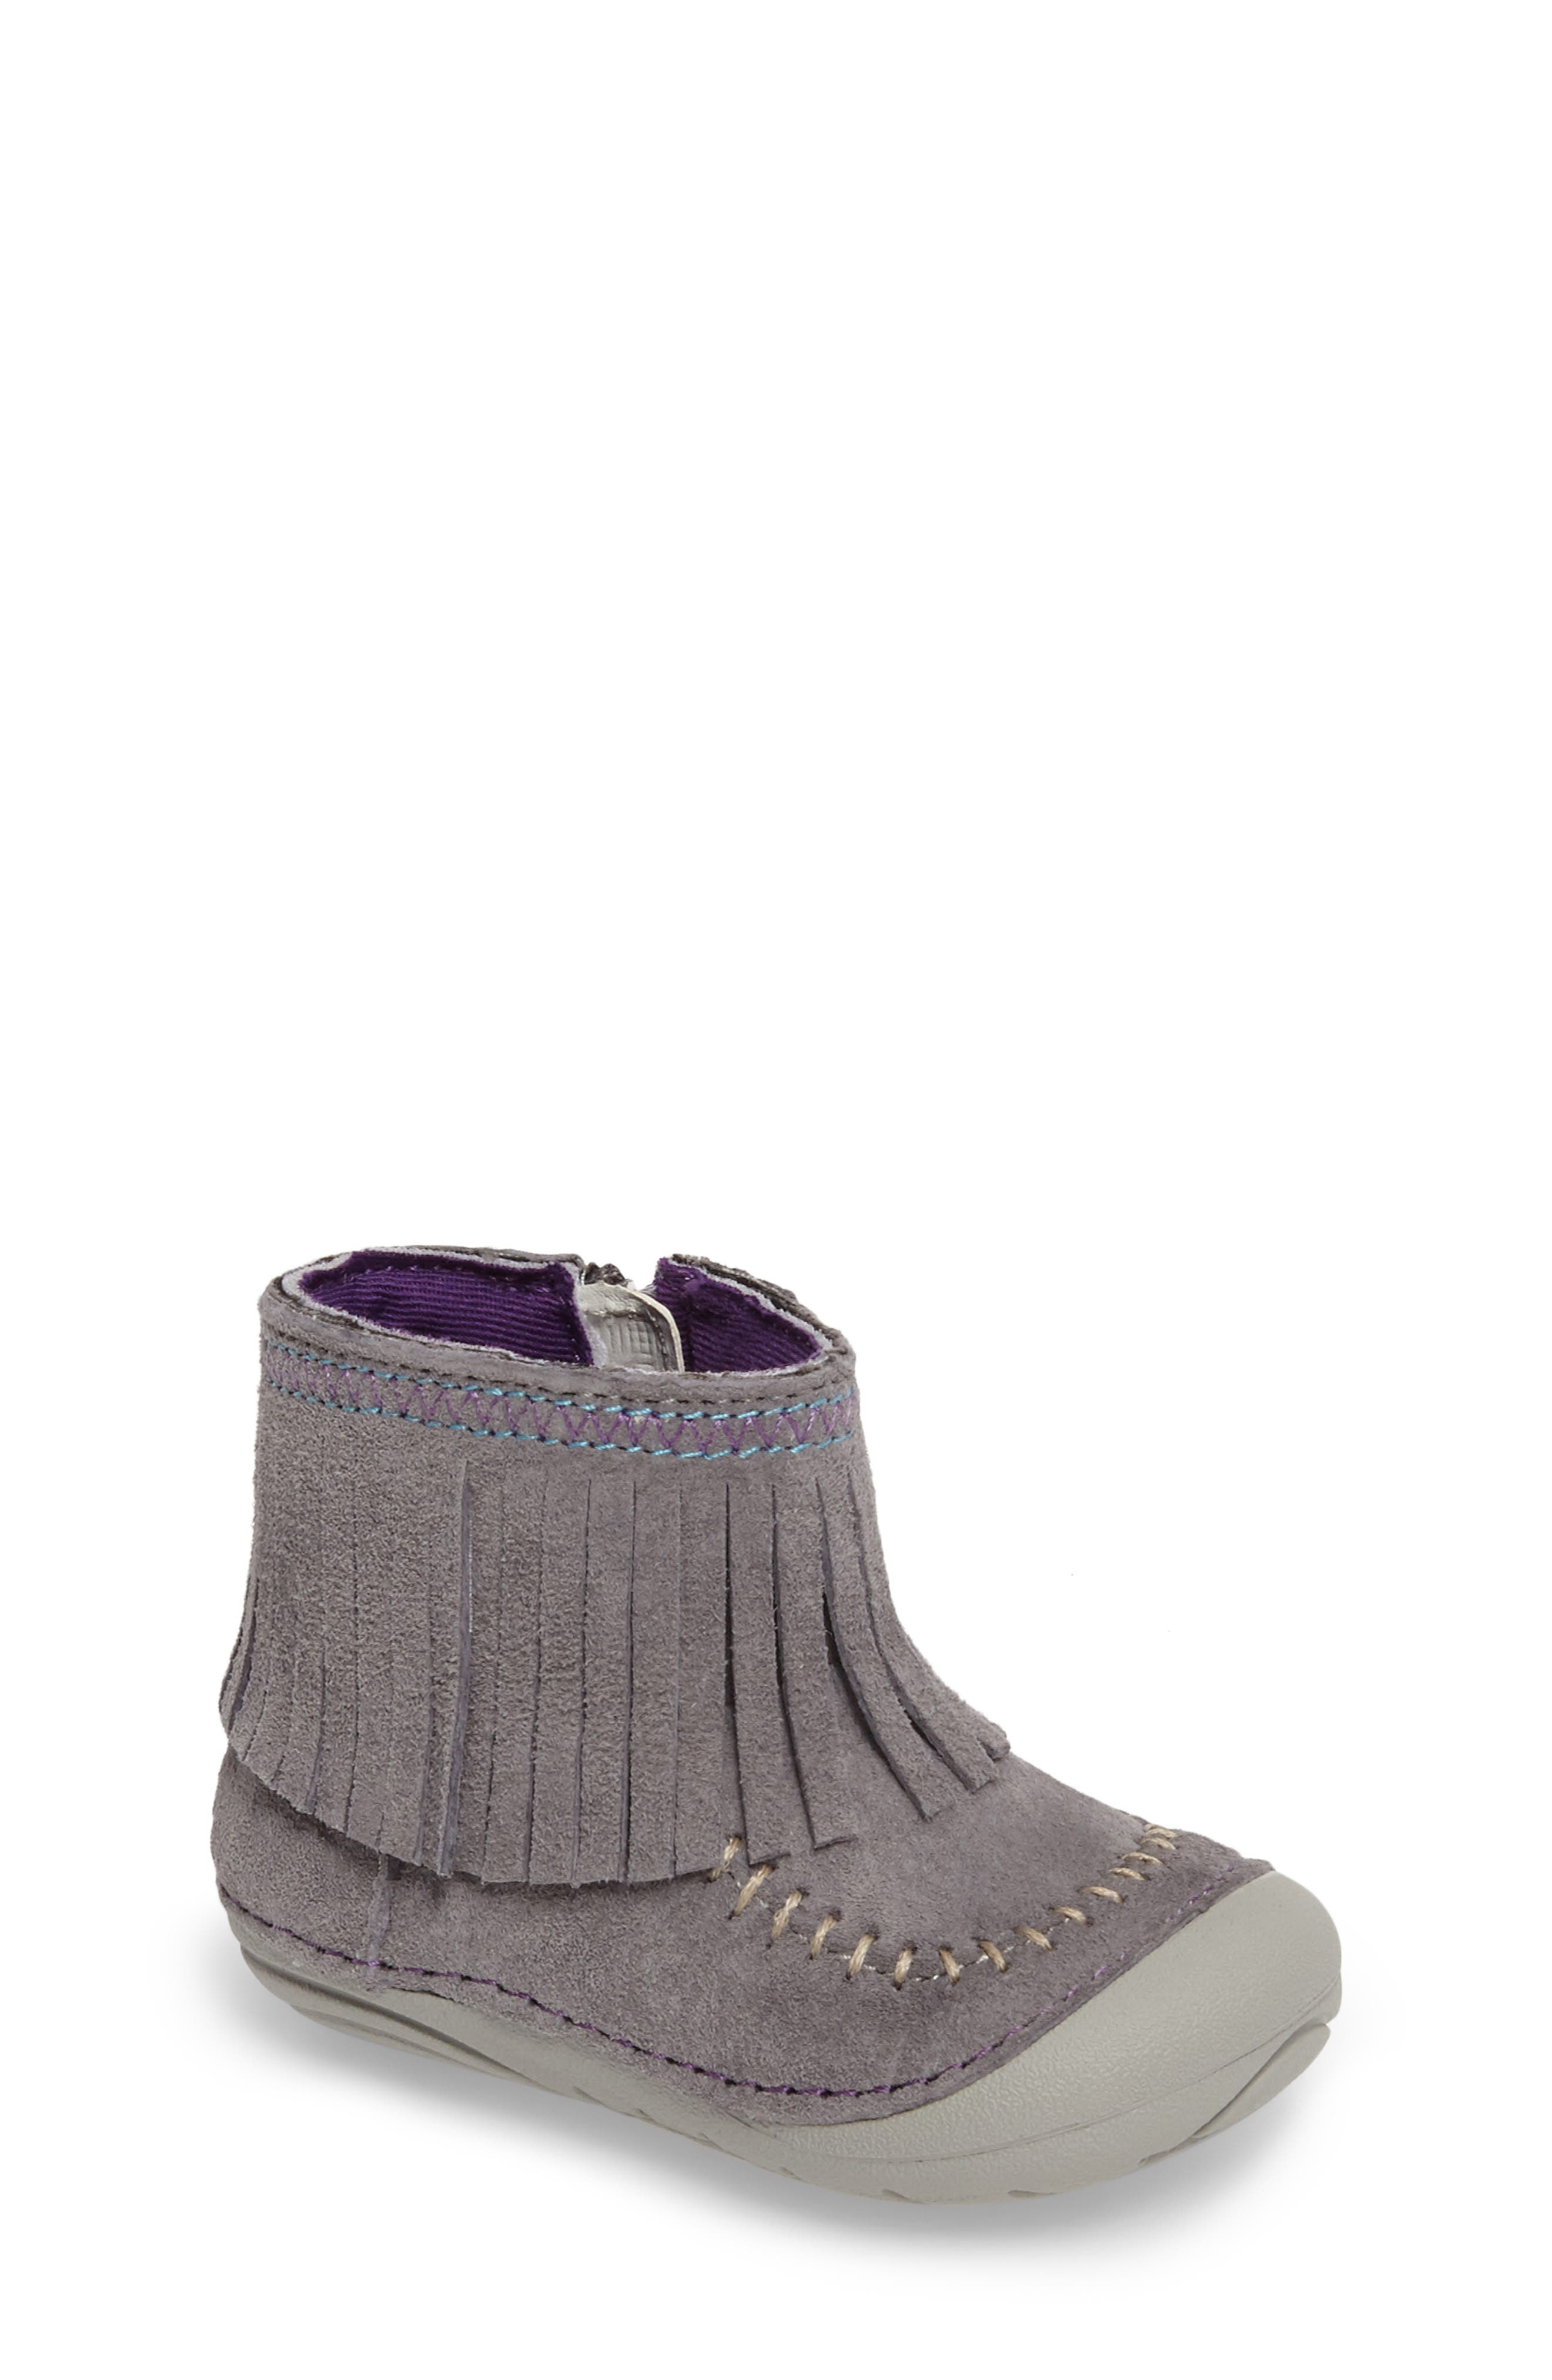 Stride Rite Soft Motion™ Tasha Fringed Bootie (Baby & Walker)